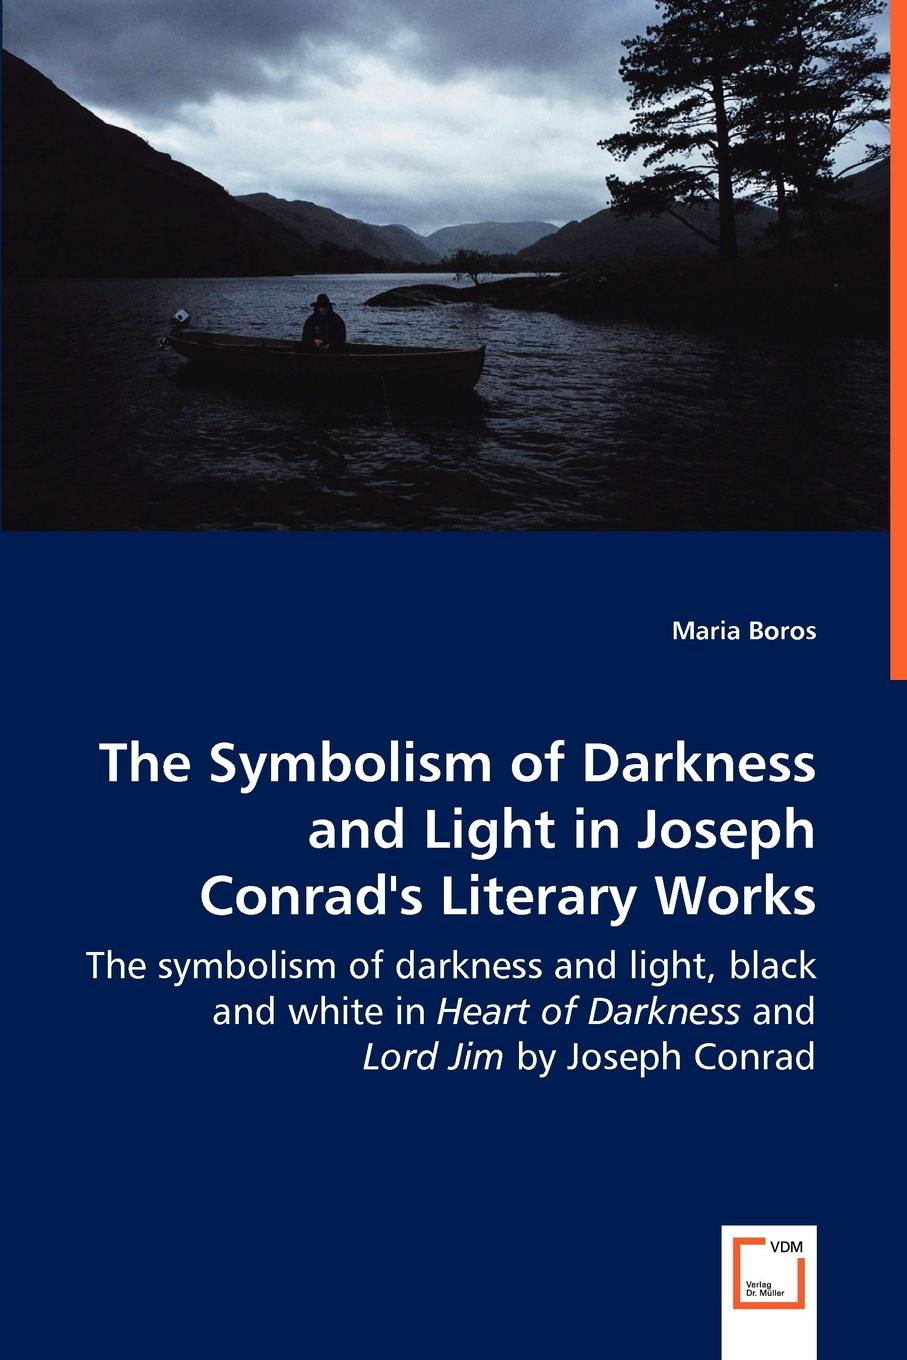 где купить Maria Boros The Symbolism of Darkness and Light in Joseph Conrad.s Literary Works - The symbolism of darkness and light, black and white in Heart of Darkness and Lord Jim by Joseph Conrad недорого с доставкой